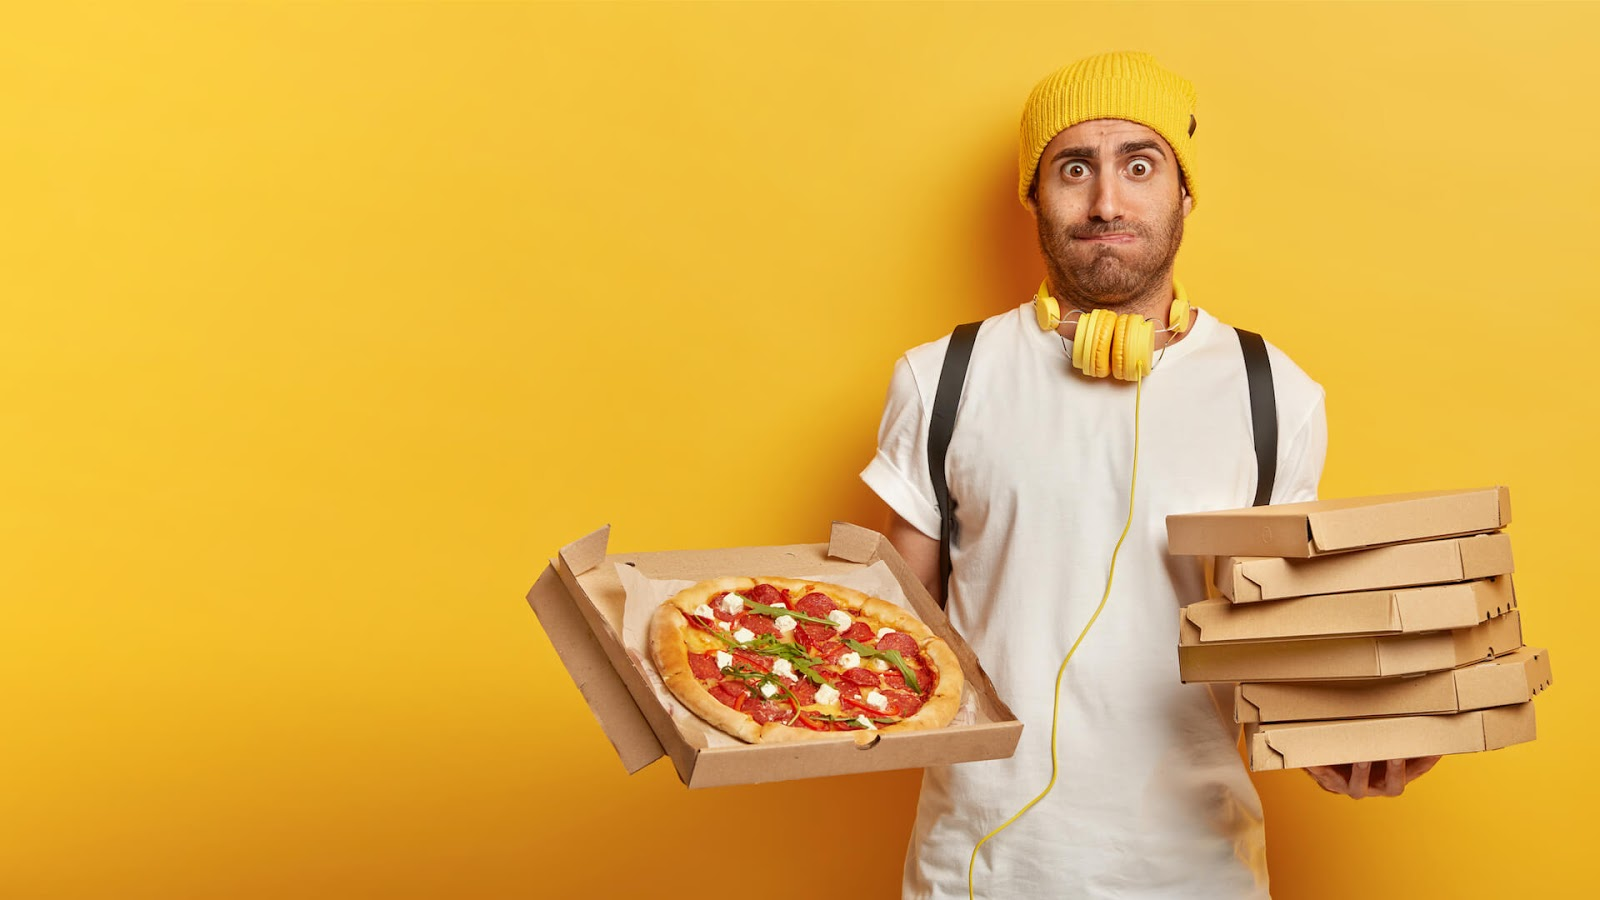 Man holding boxes of pizza